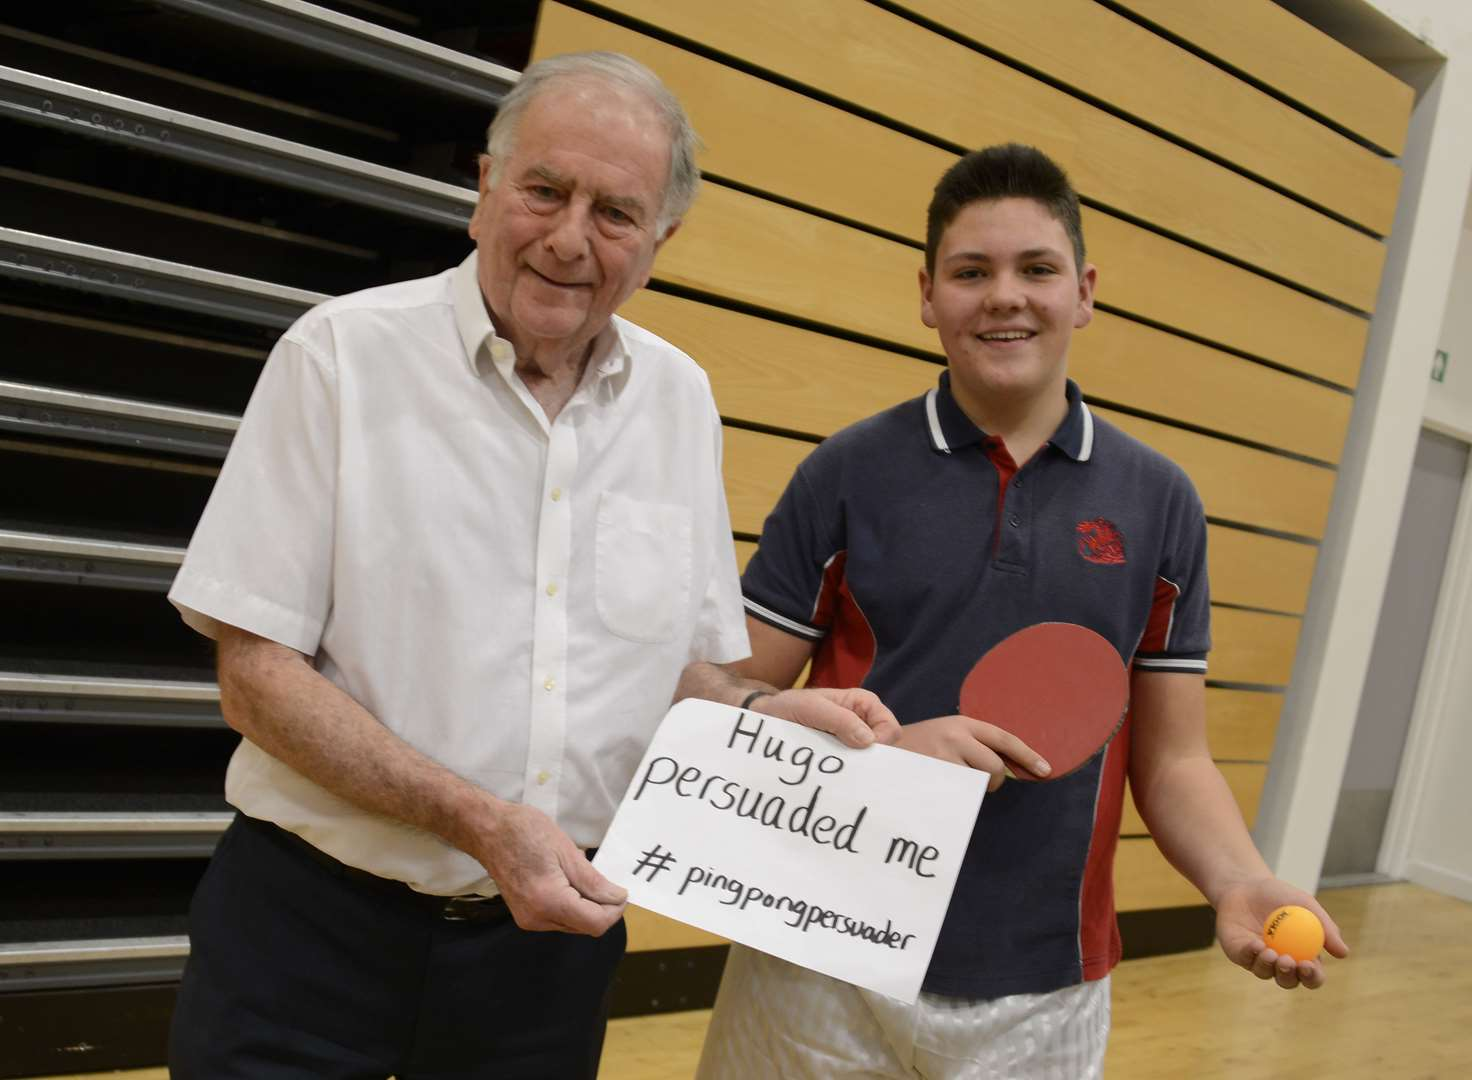 Ping pong persuader plays MP